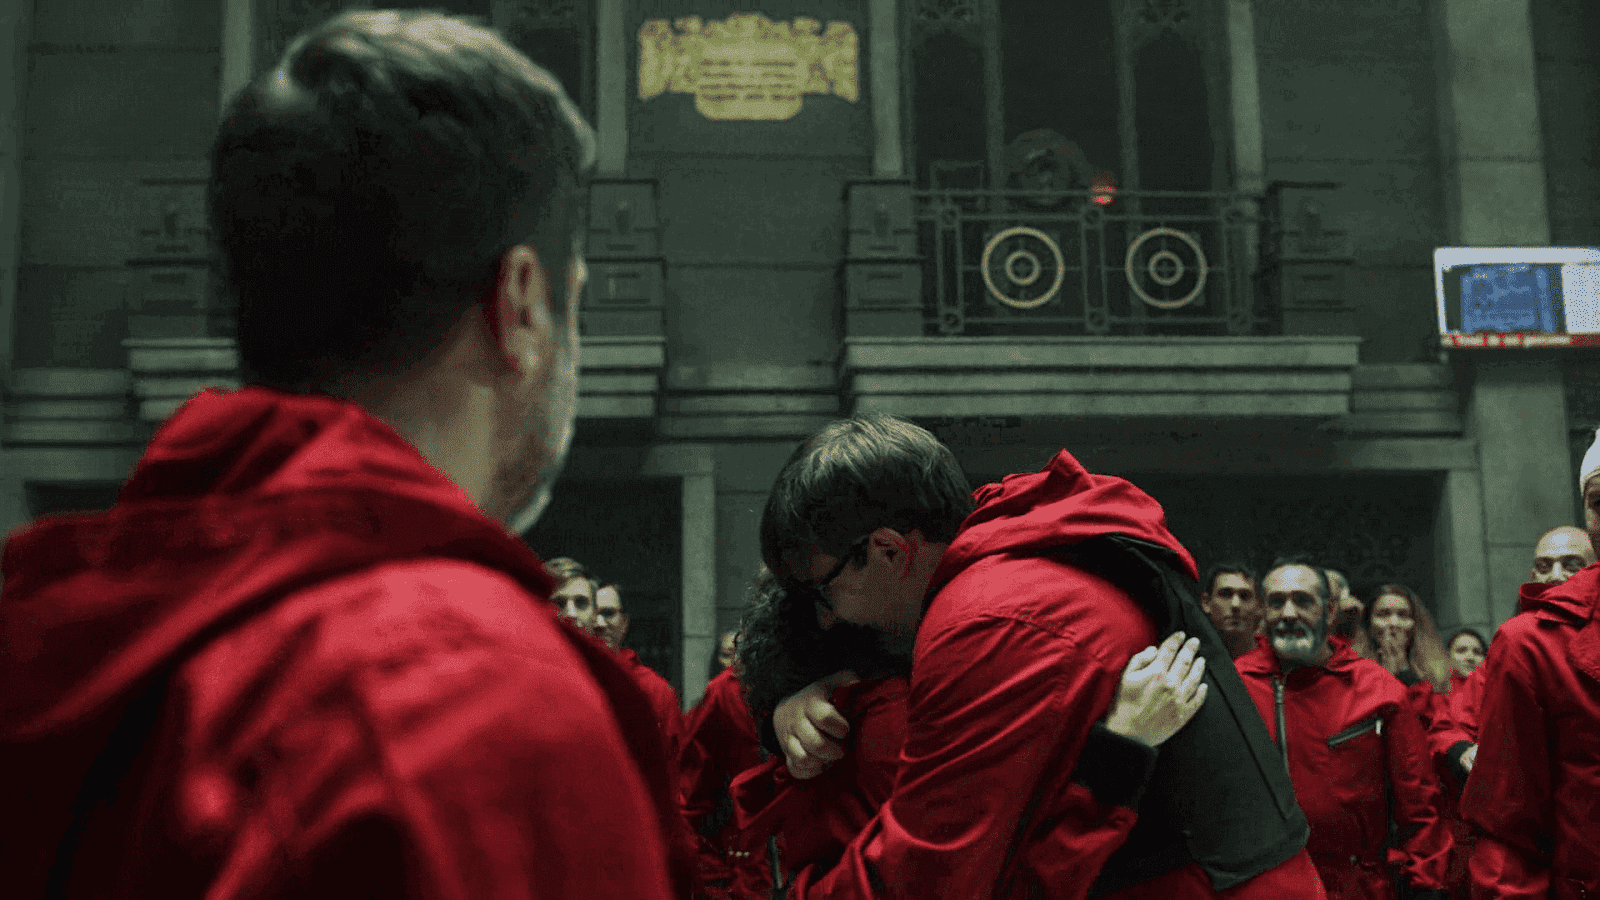 The Real Story behind La Casa De Papel, aka Money Heist